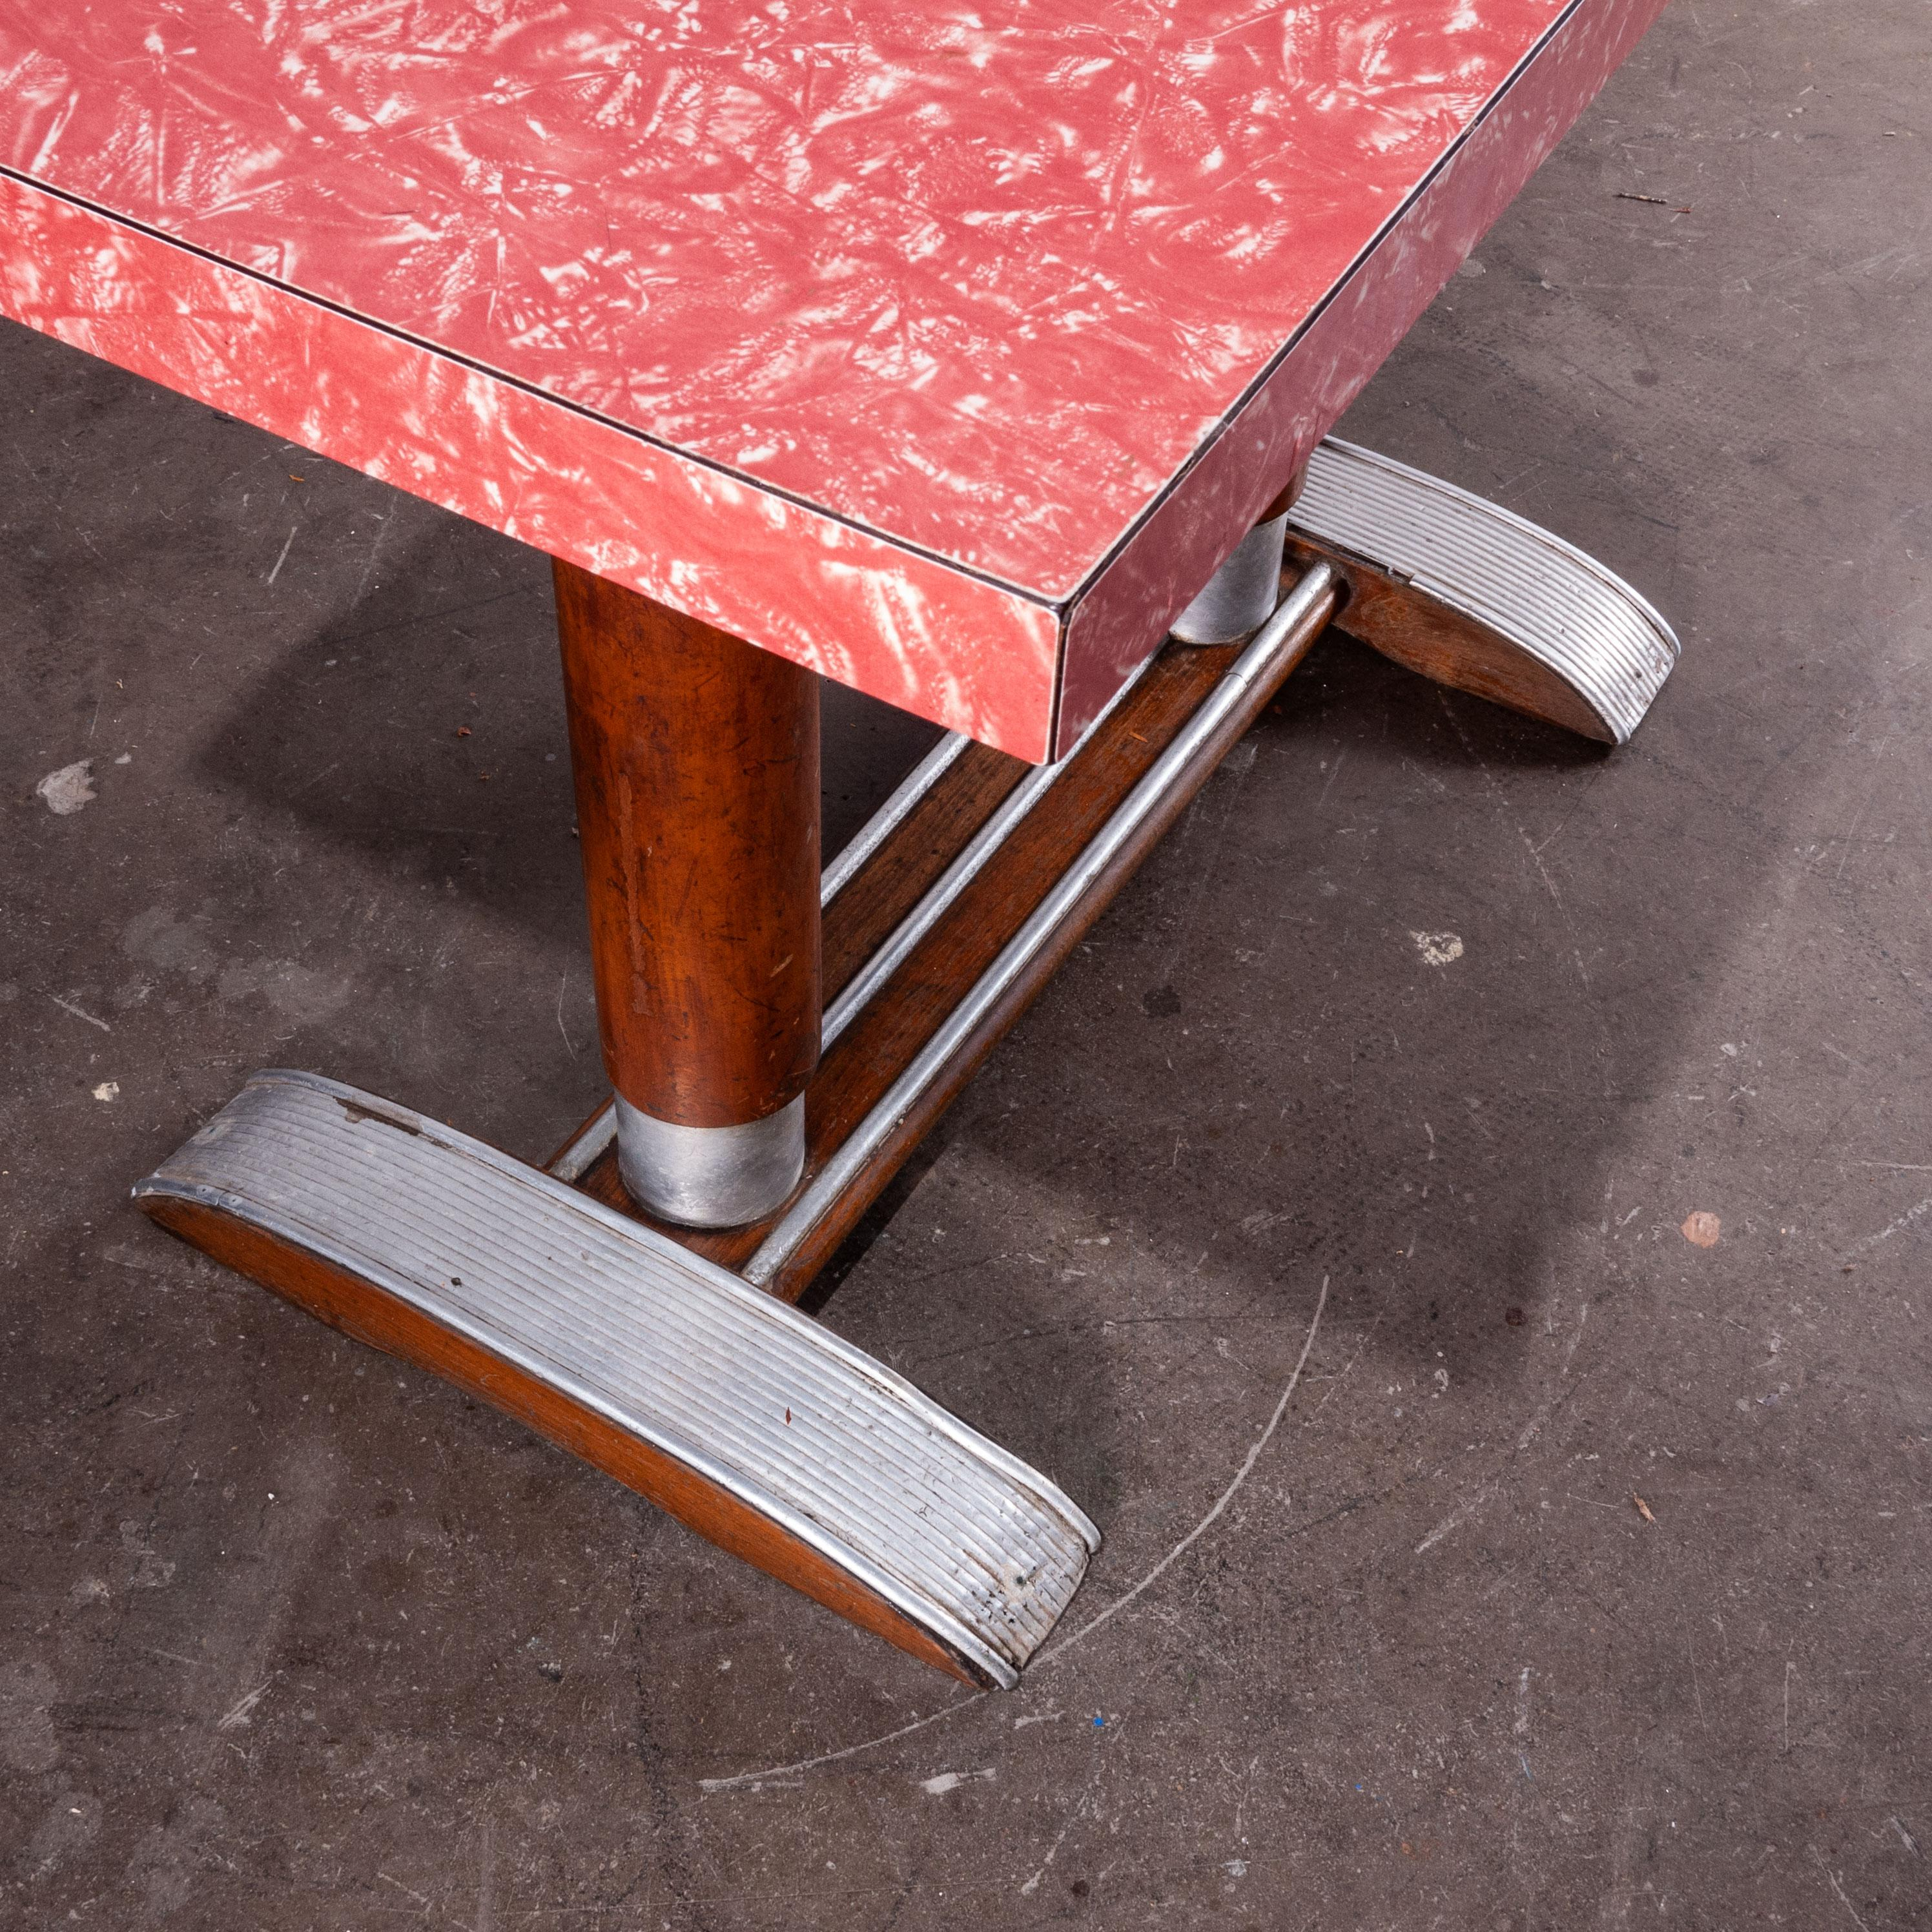 Bistro cafe dining kitchen table and